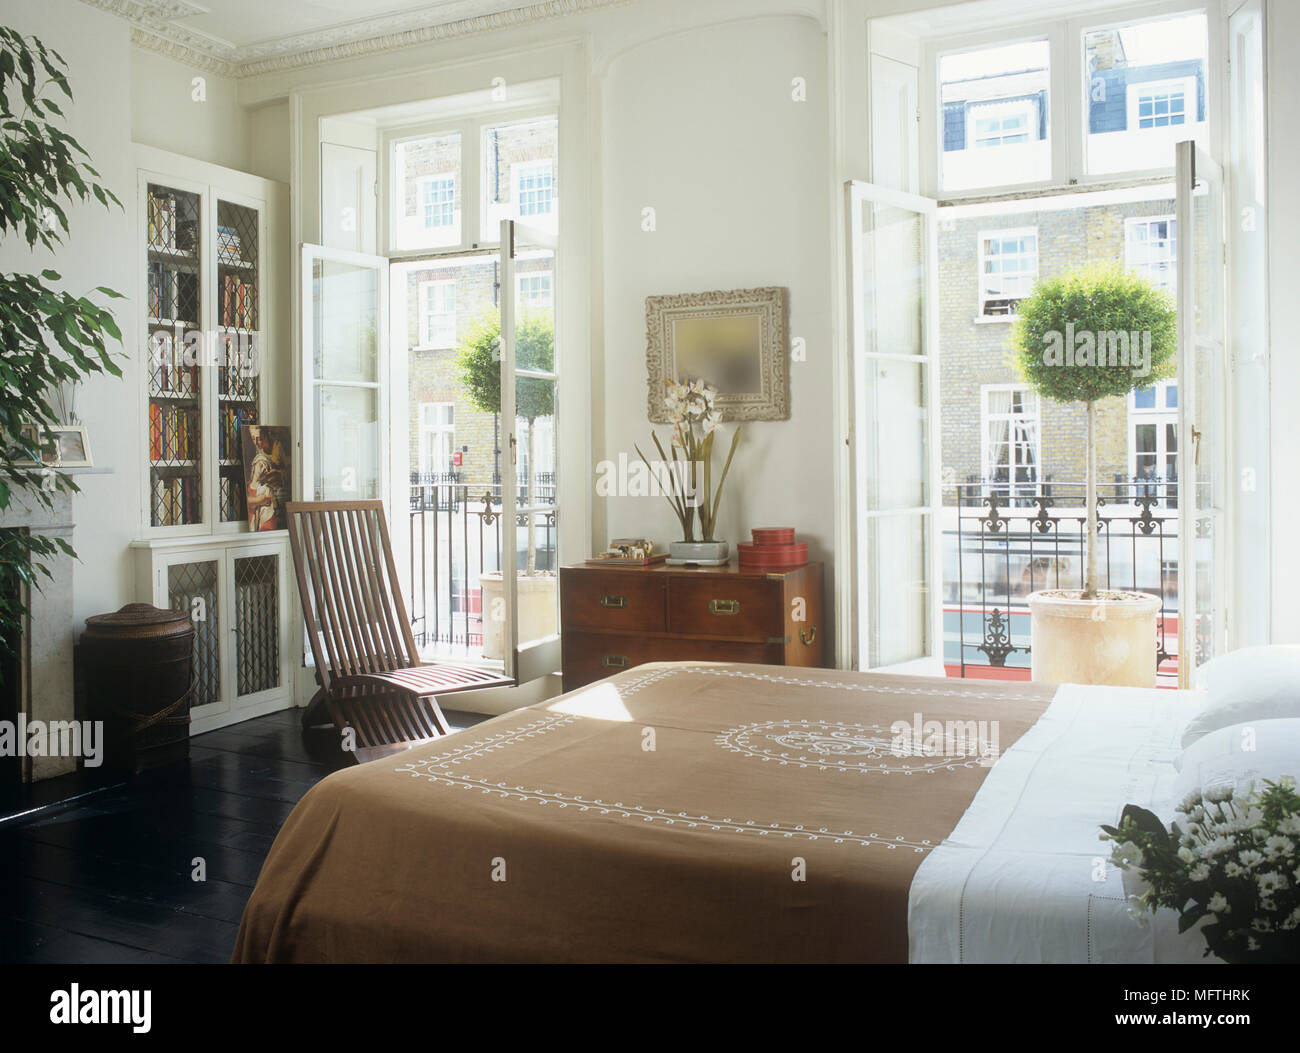 A Bright And Airy Modern Bedroom With A Bed, A Chair, Book Shelf And Side  Cabinet And Potted Trees On A Balcony.